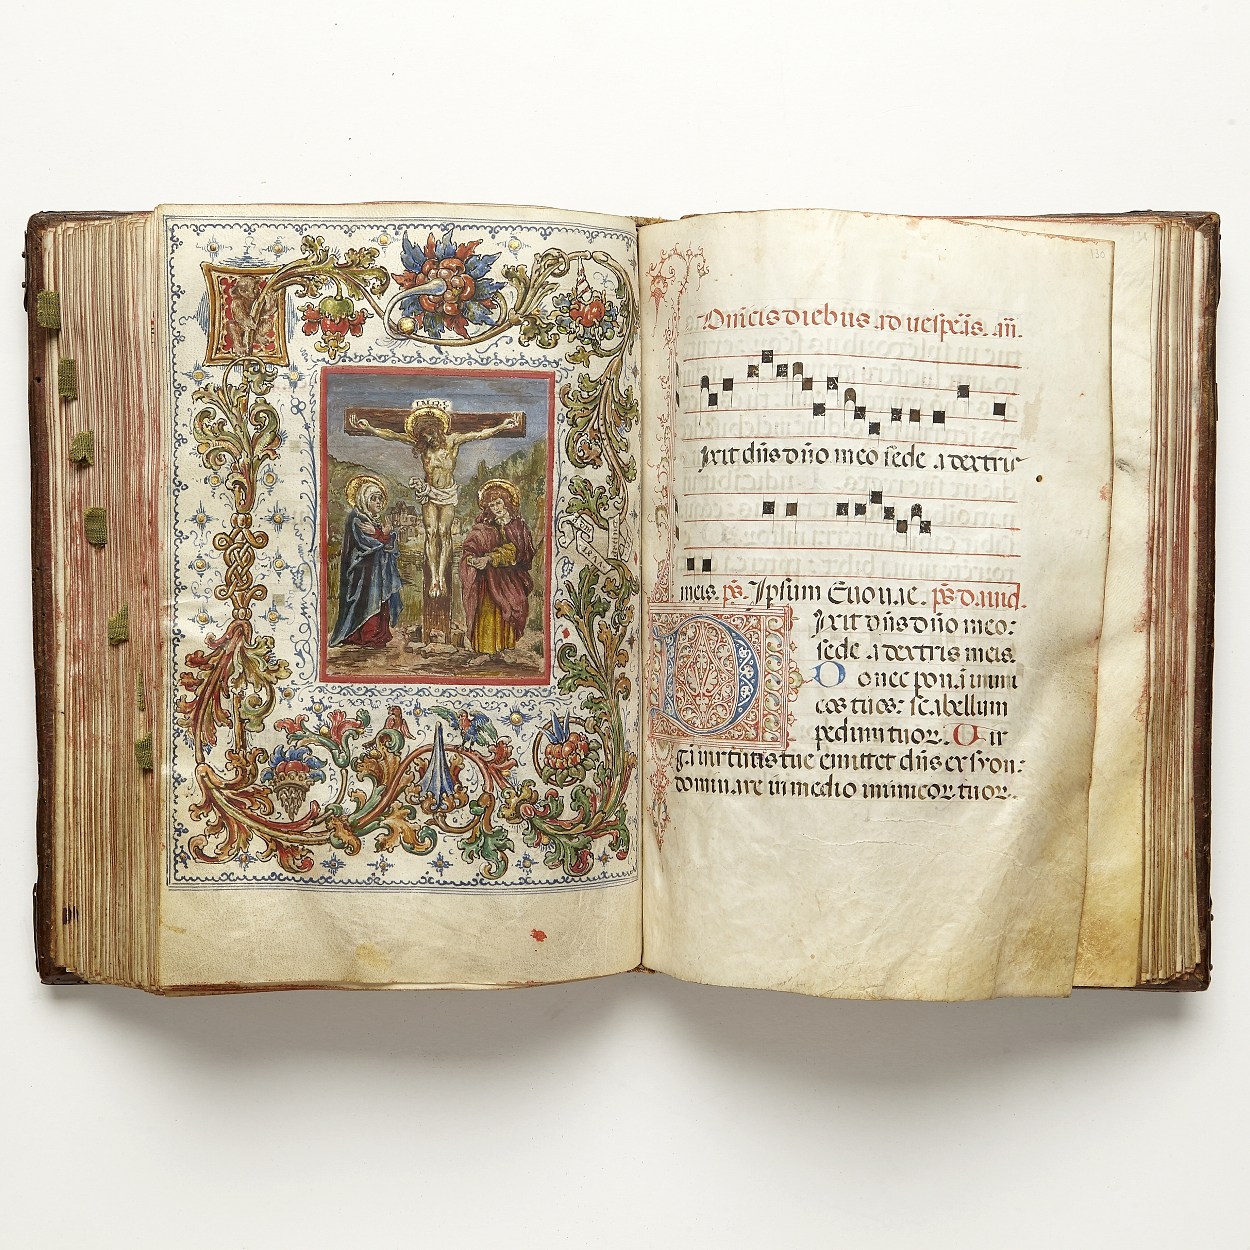 Illuminated manuscript 1477 Carthusian provenance